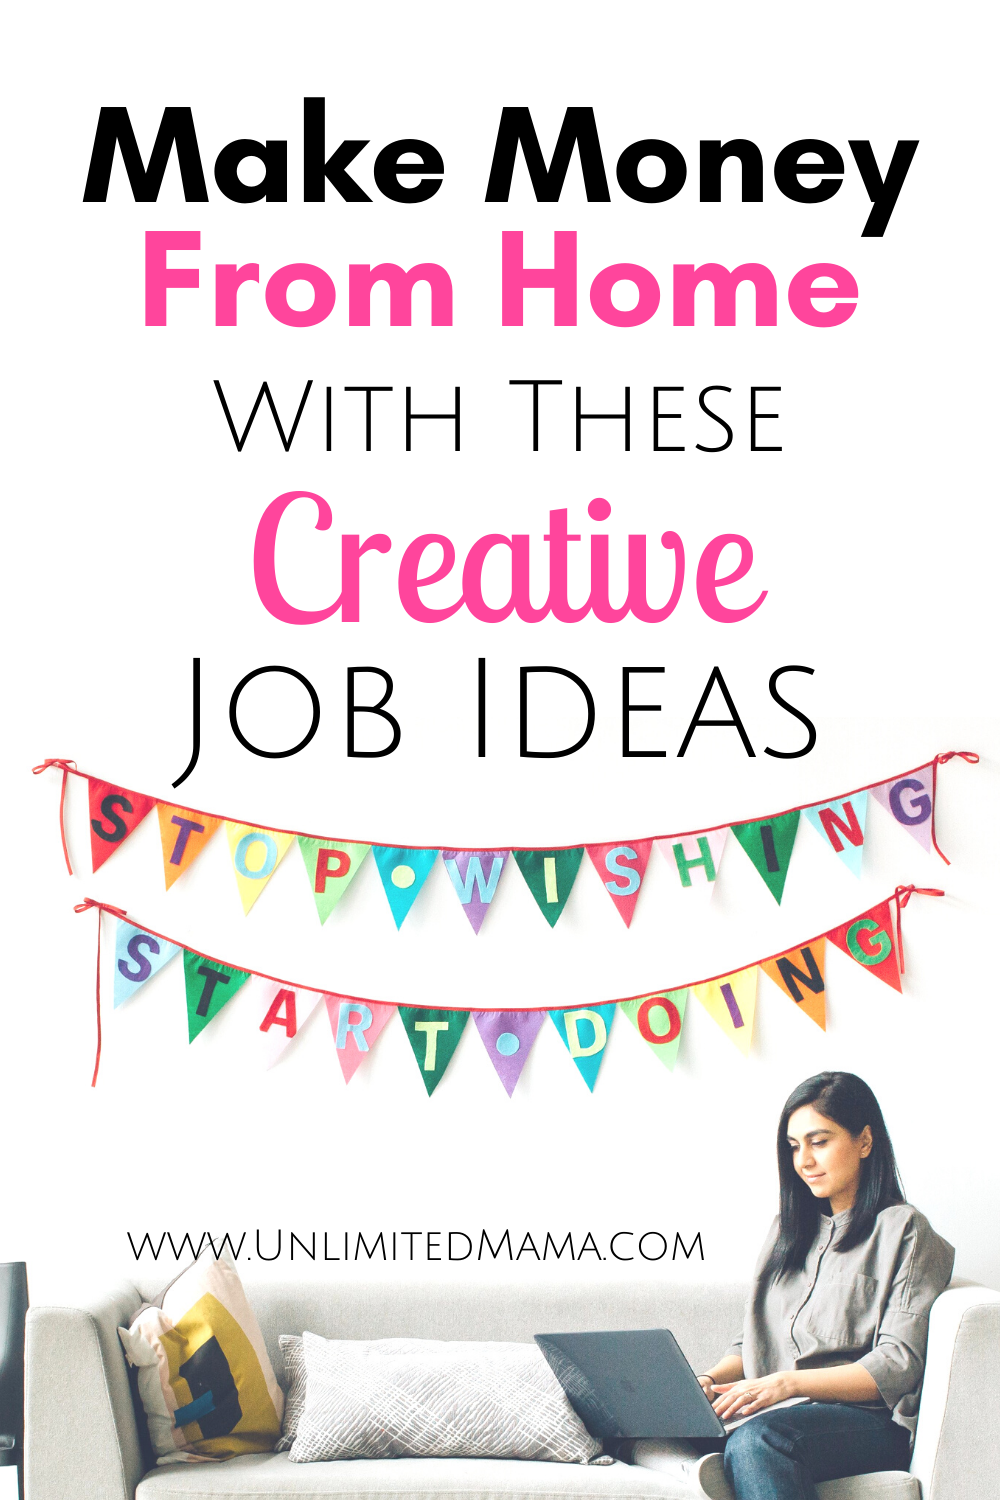 Make Money From Home With These Creative Job Ideas Creative Jobs Work From Home Jobs Make Money From Home